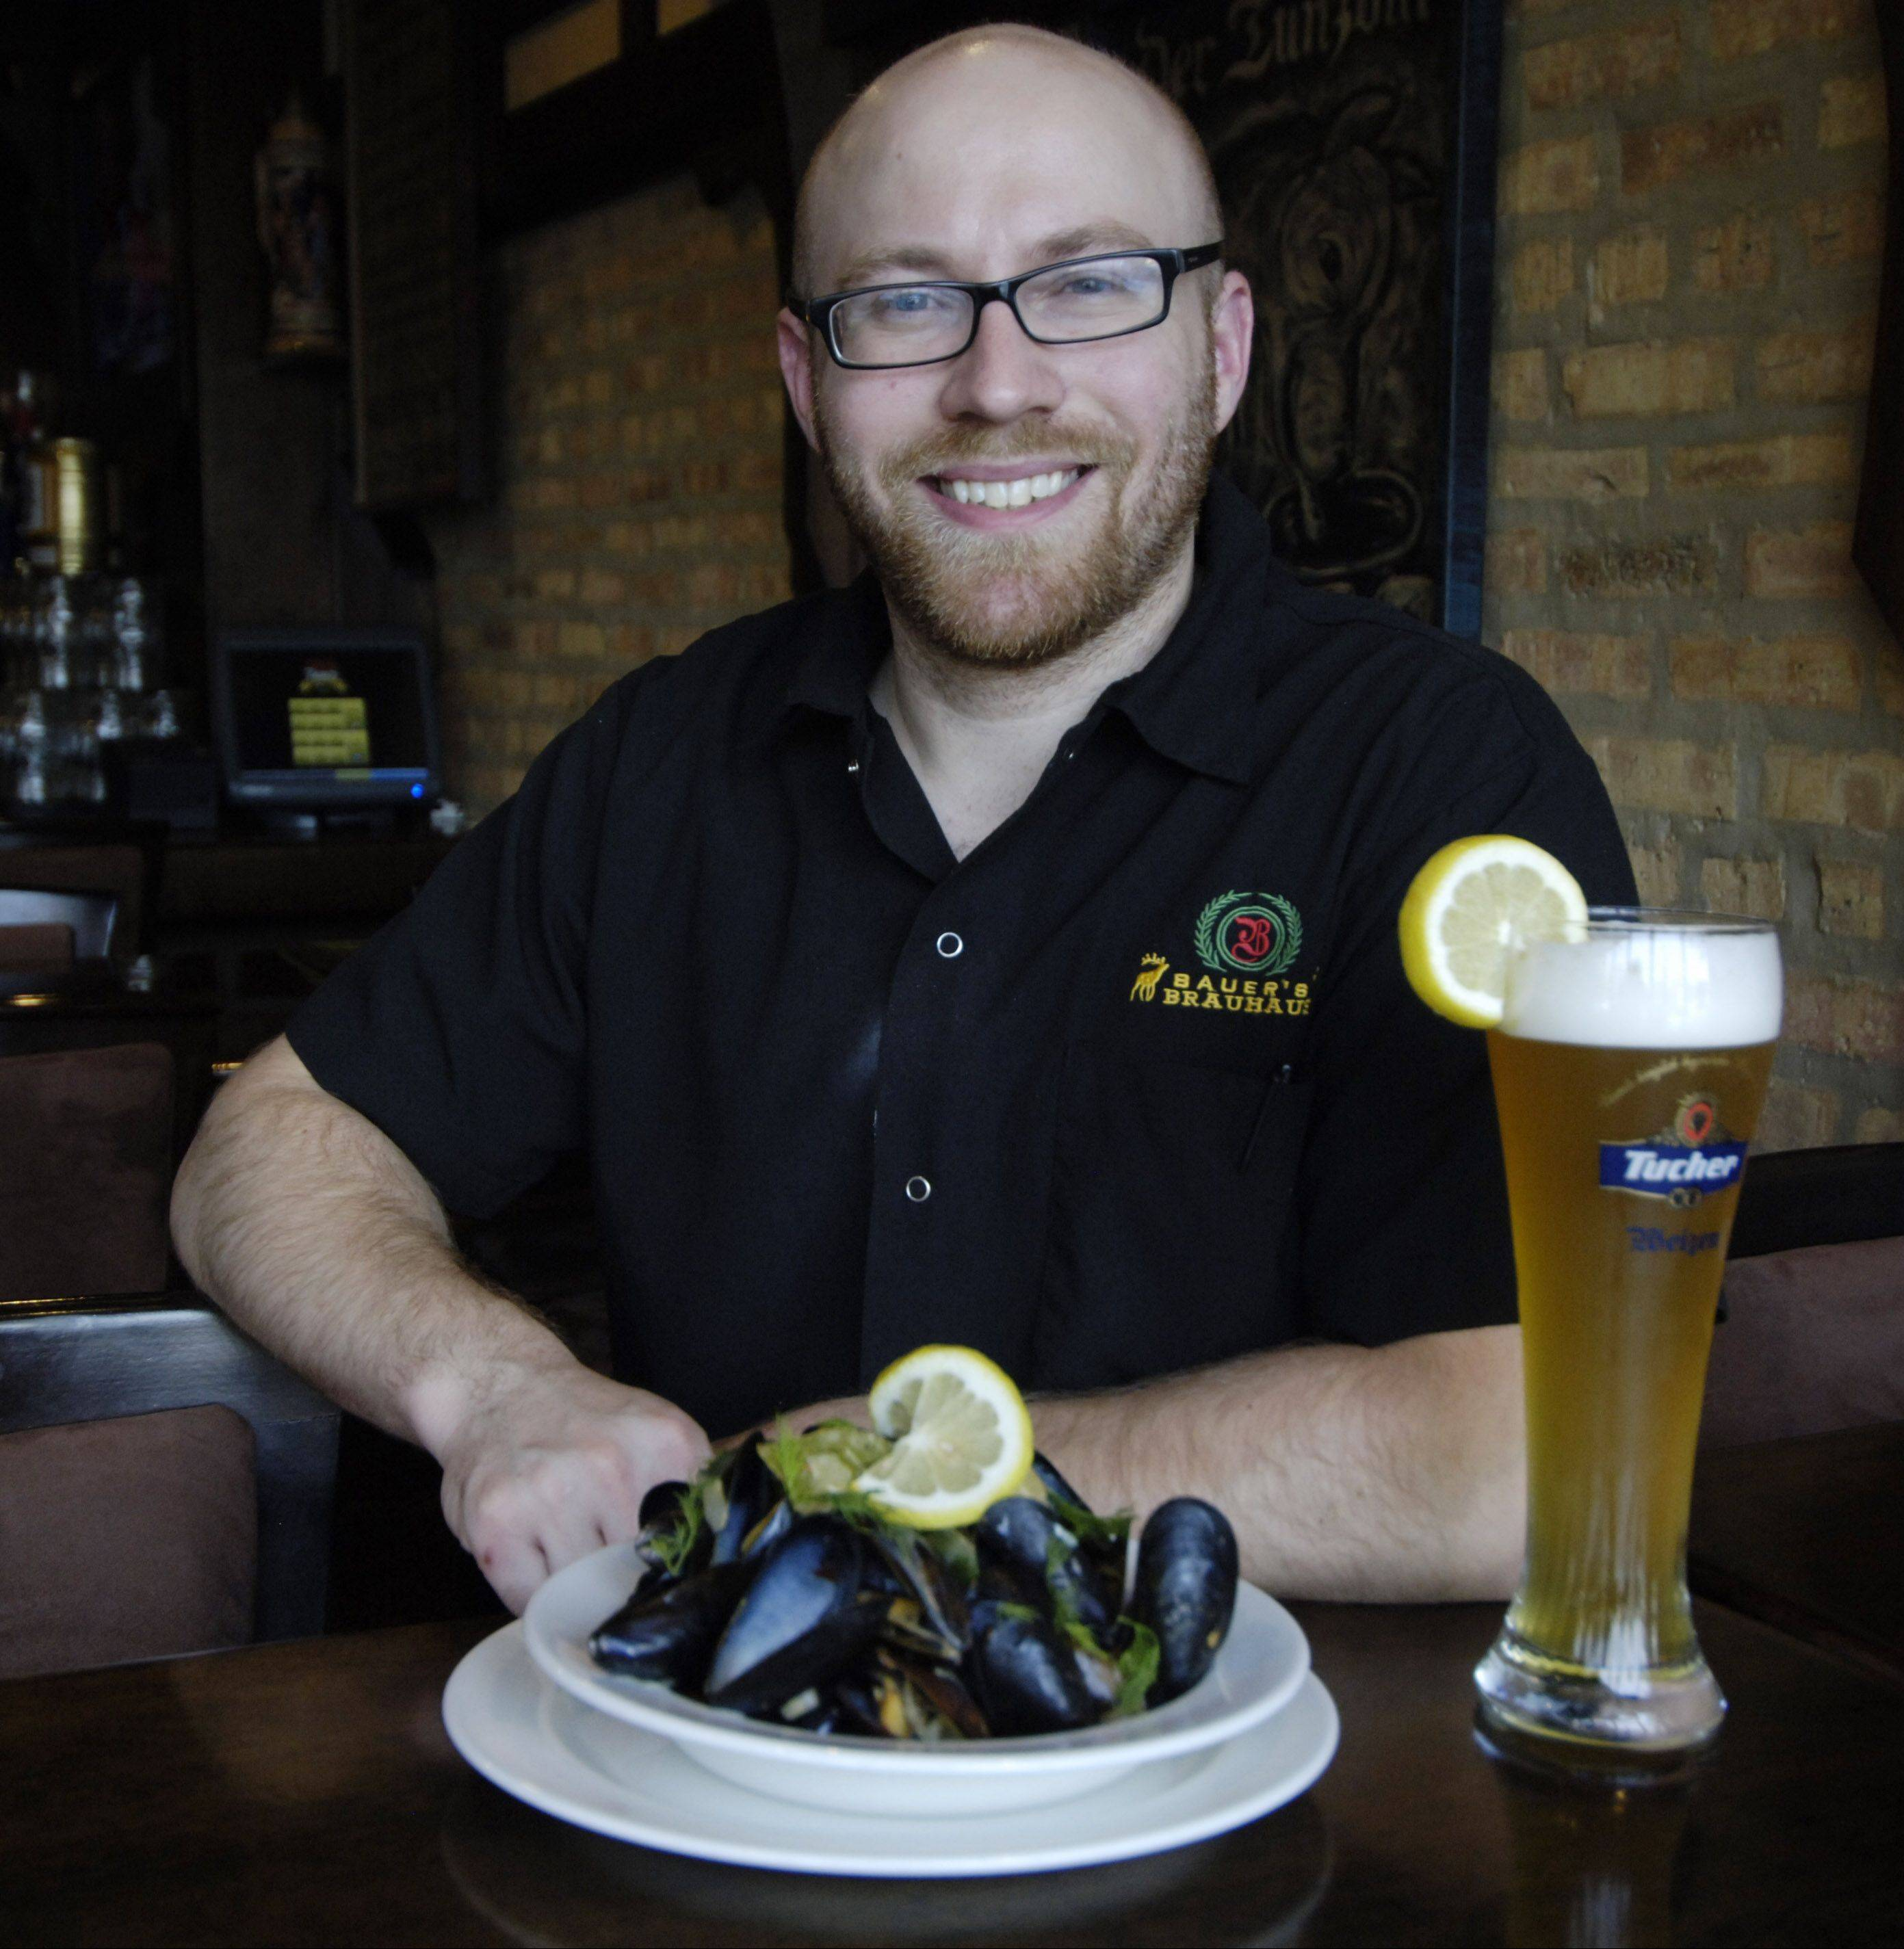 Chef Jason Bauer runs the kitchen at Bauer's Brauhaus in Palatine where he makes his own sausages and cooks German fare with local ingredients.